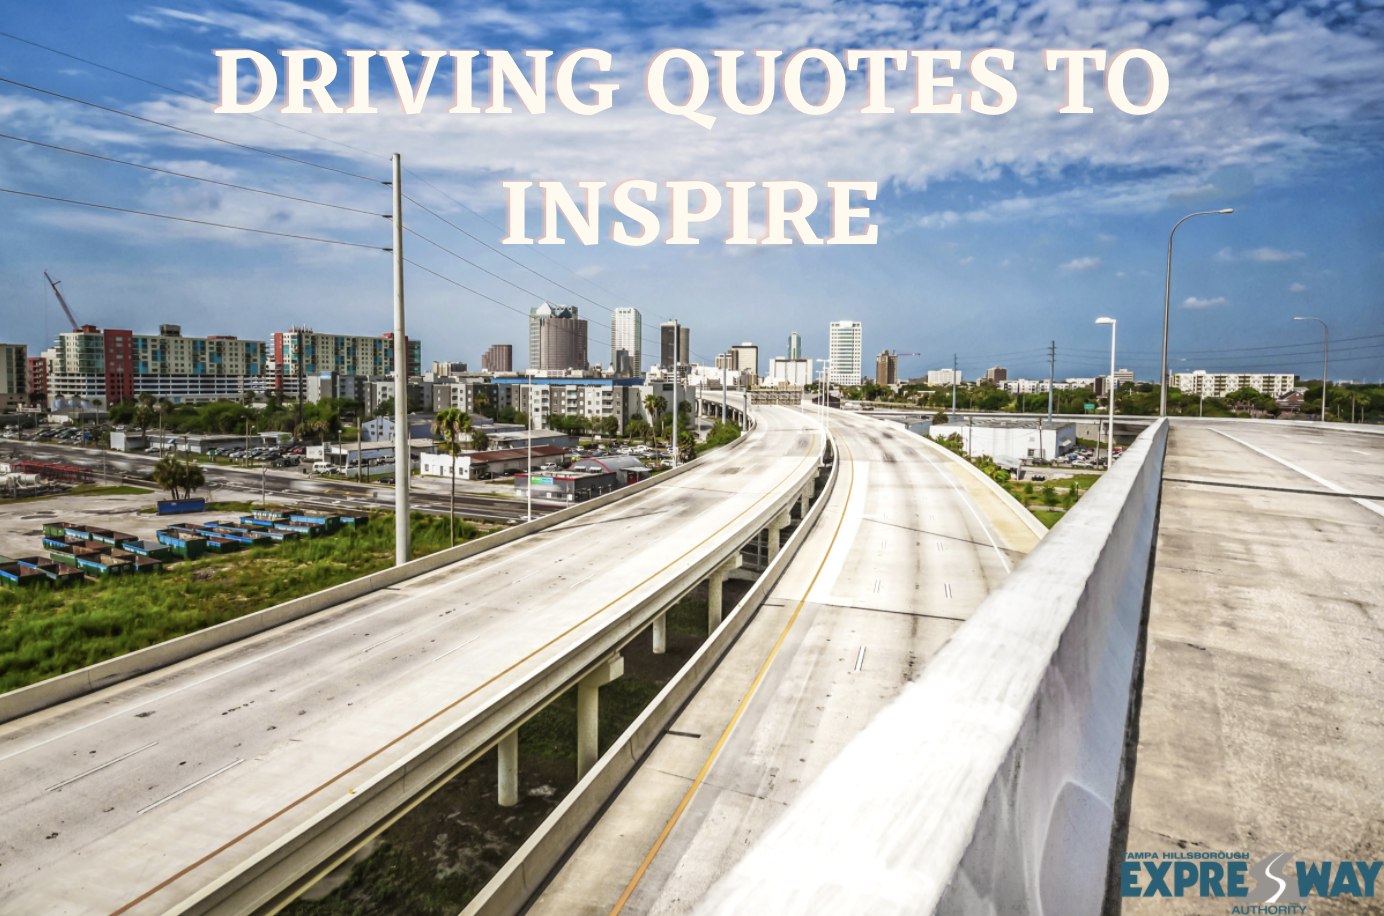 Inspiring Driving Quotes for Your Next Road Trip